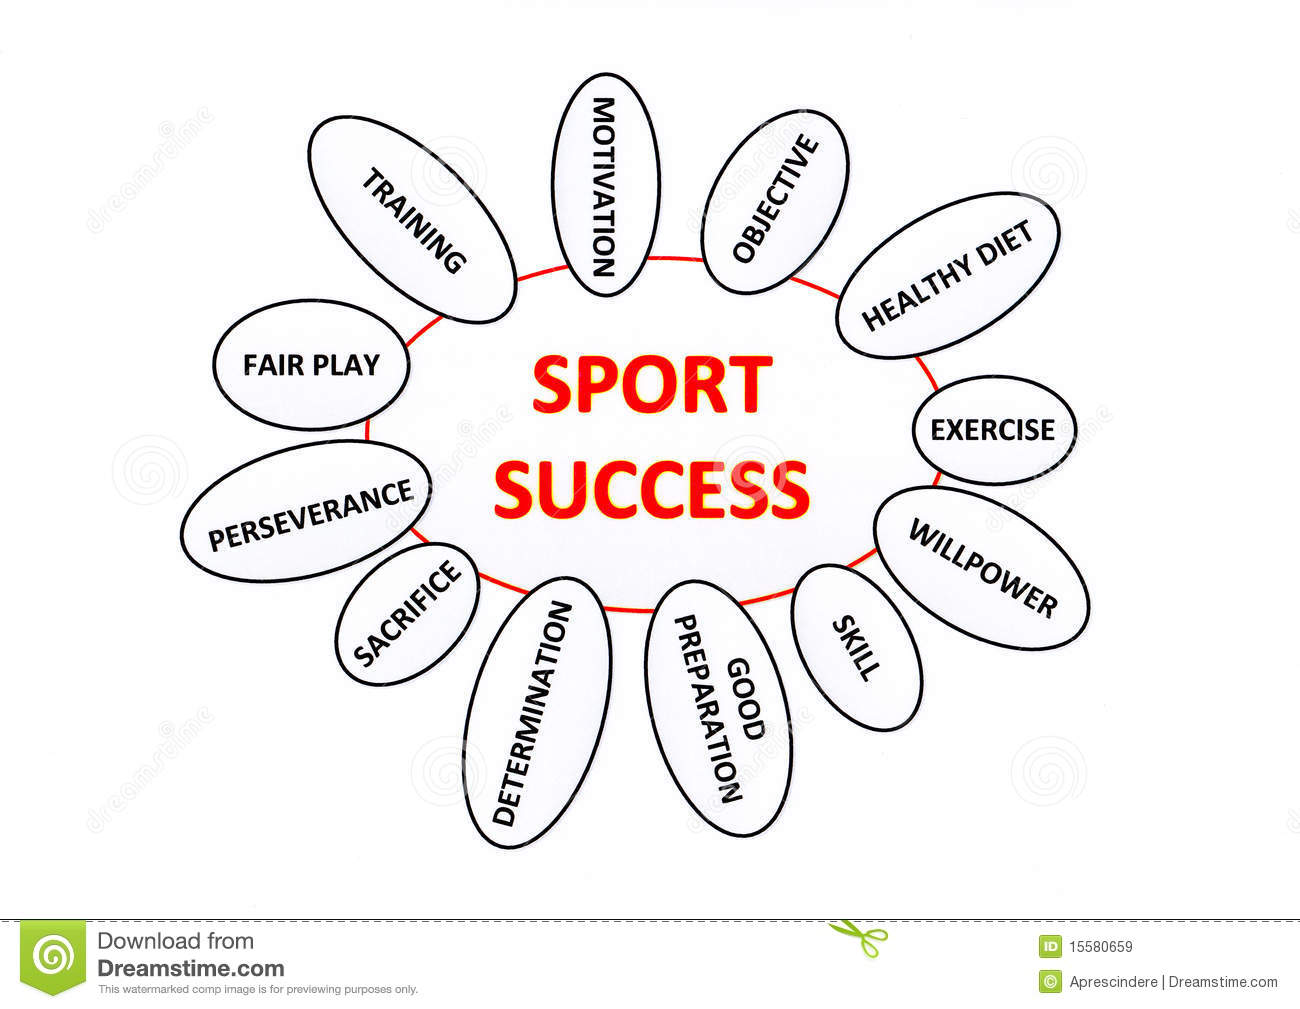 Royalty Free Stock Images Sport Success Image15580659 on Latest Topics To Write About